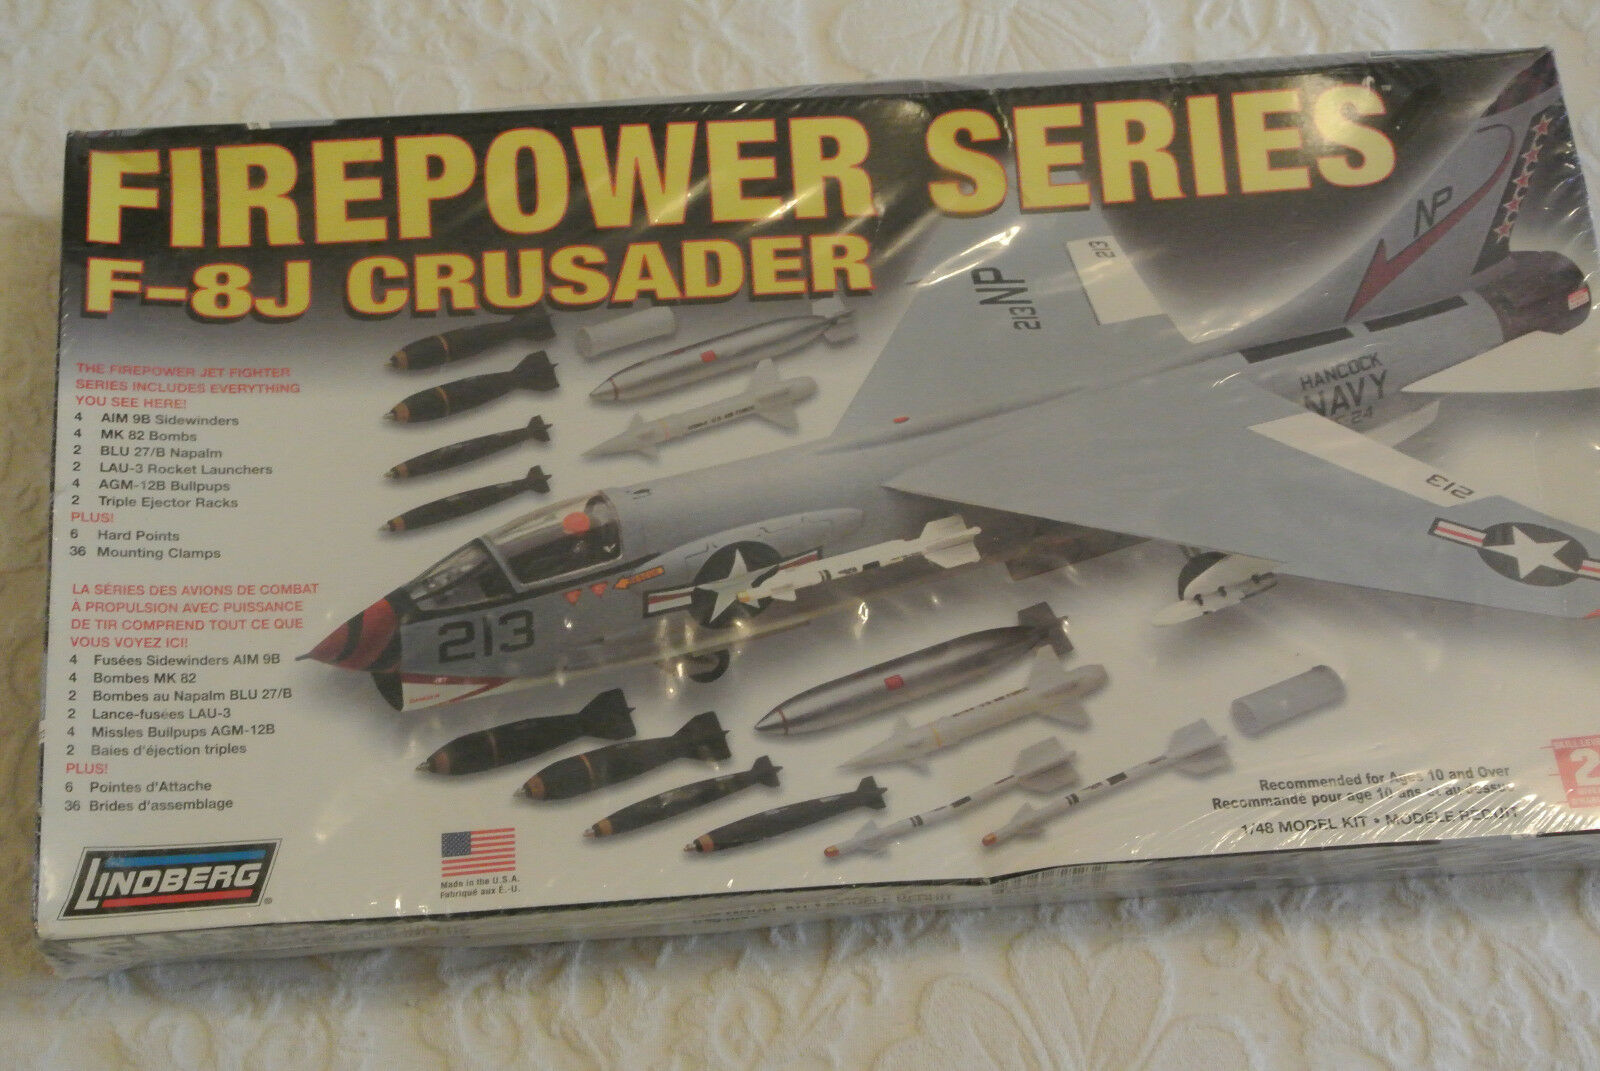 LINDBERG 1 48 scale  kit -  -  LTV  F-8J CRUSADER